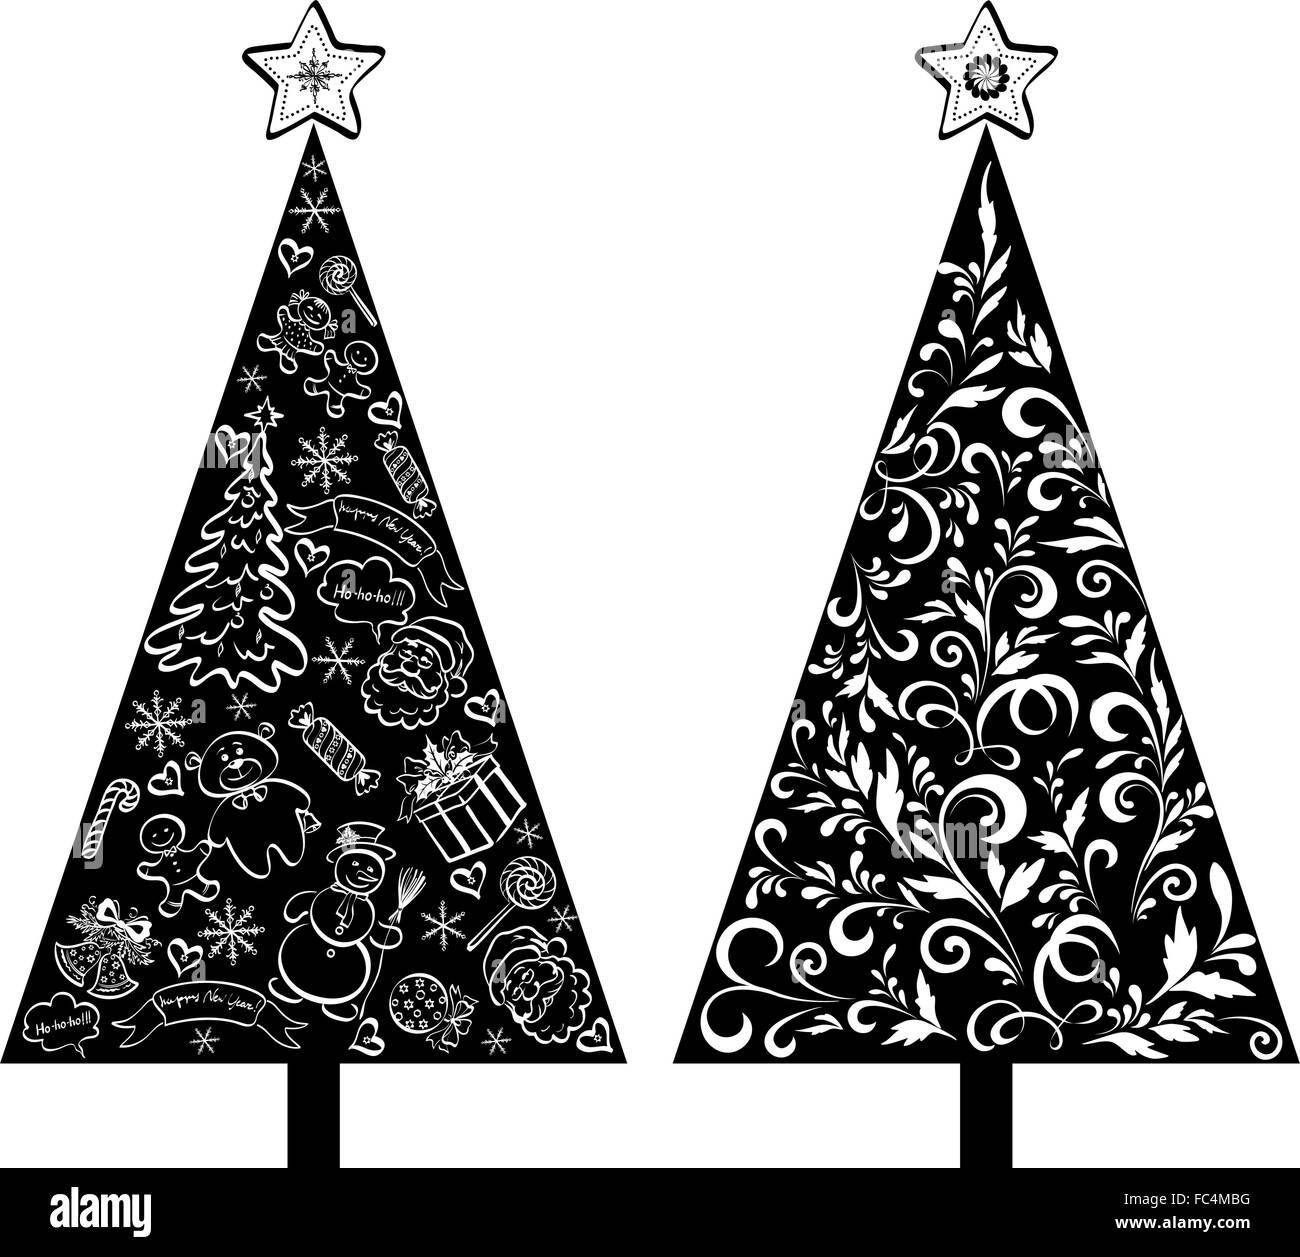 Jingle Ball Black and White Stock Photos & Images - Alamy